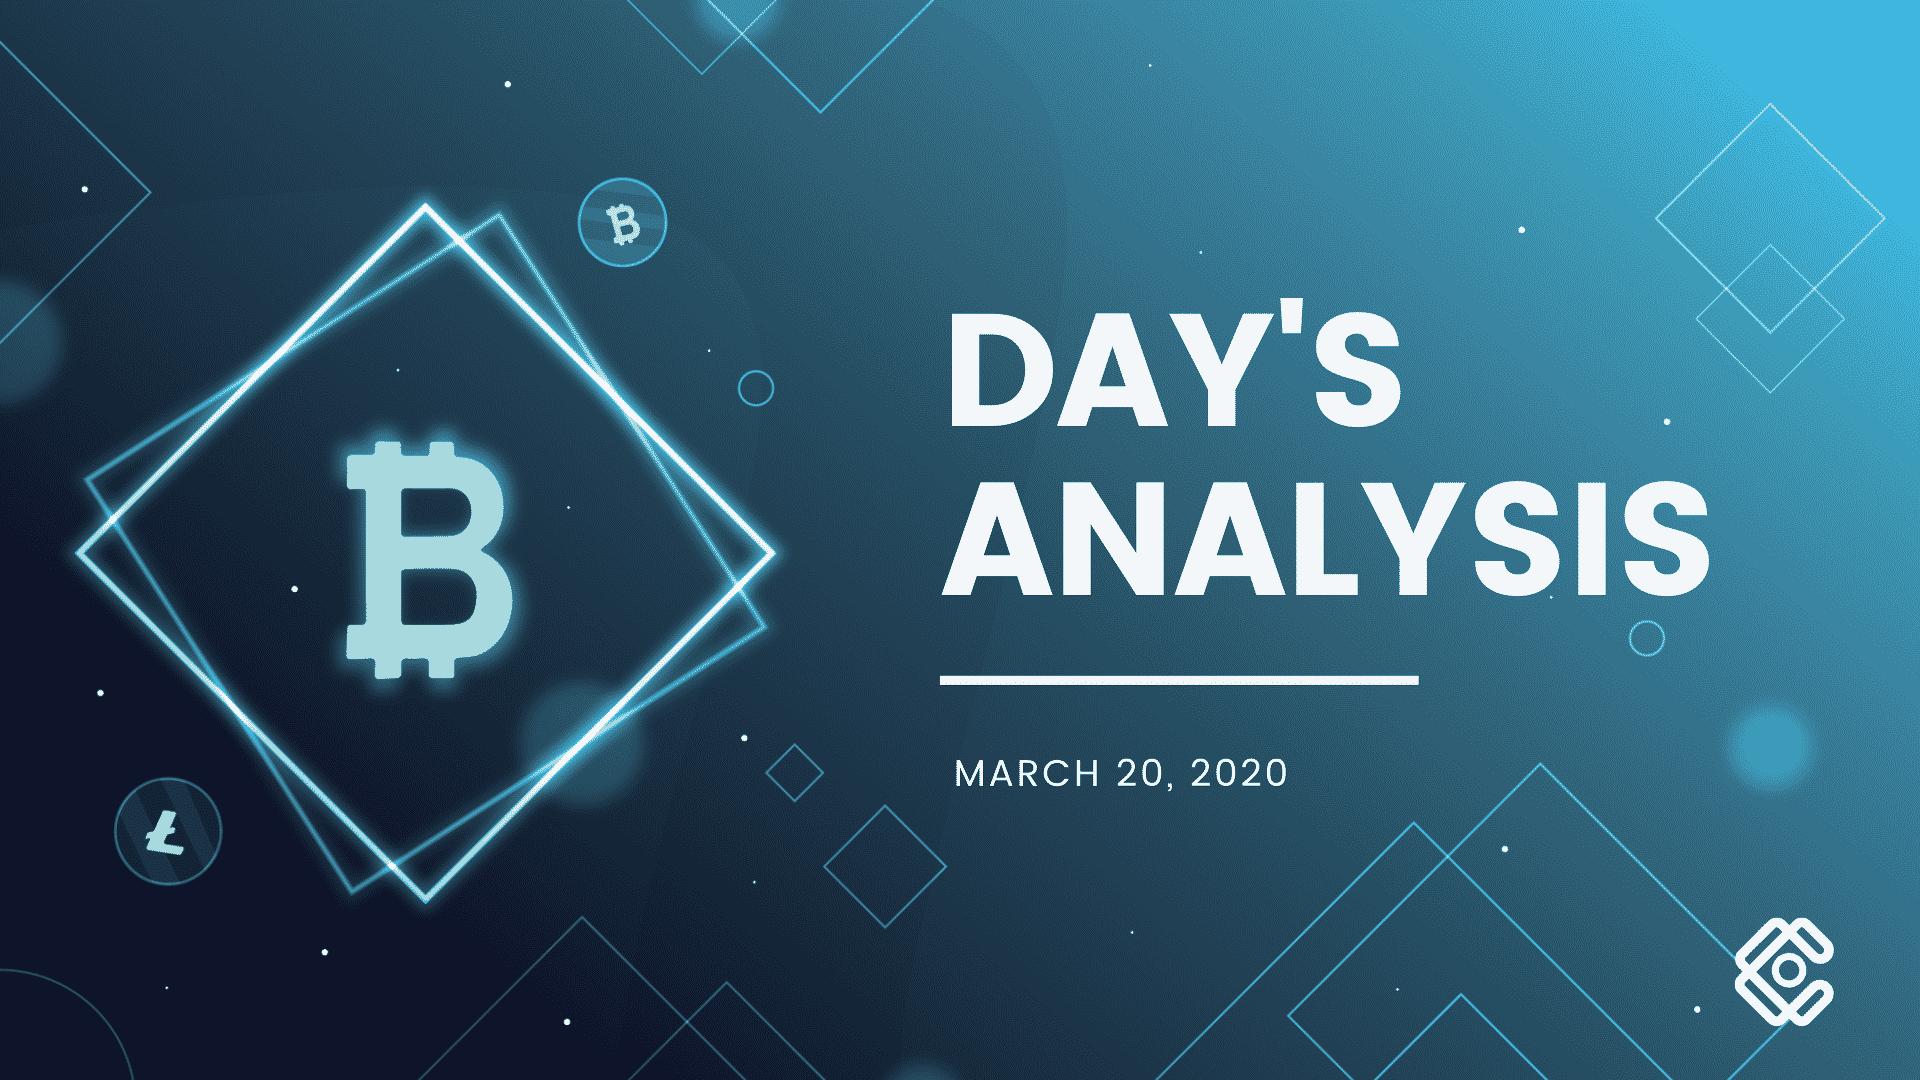 Market Analysis of March 20, 2020